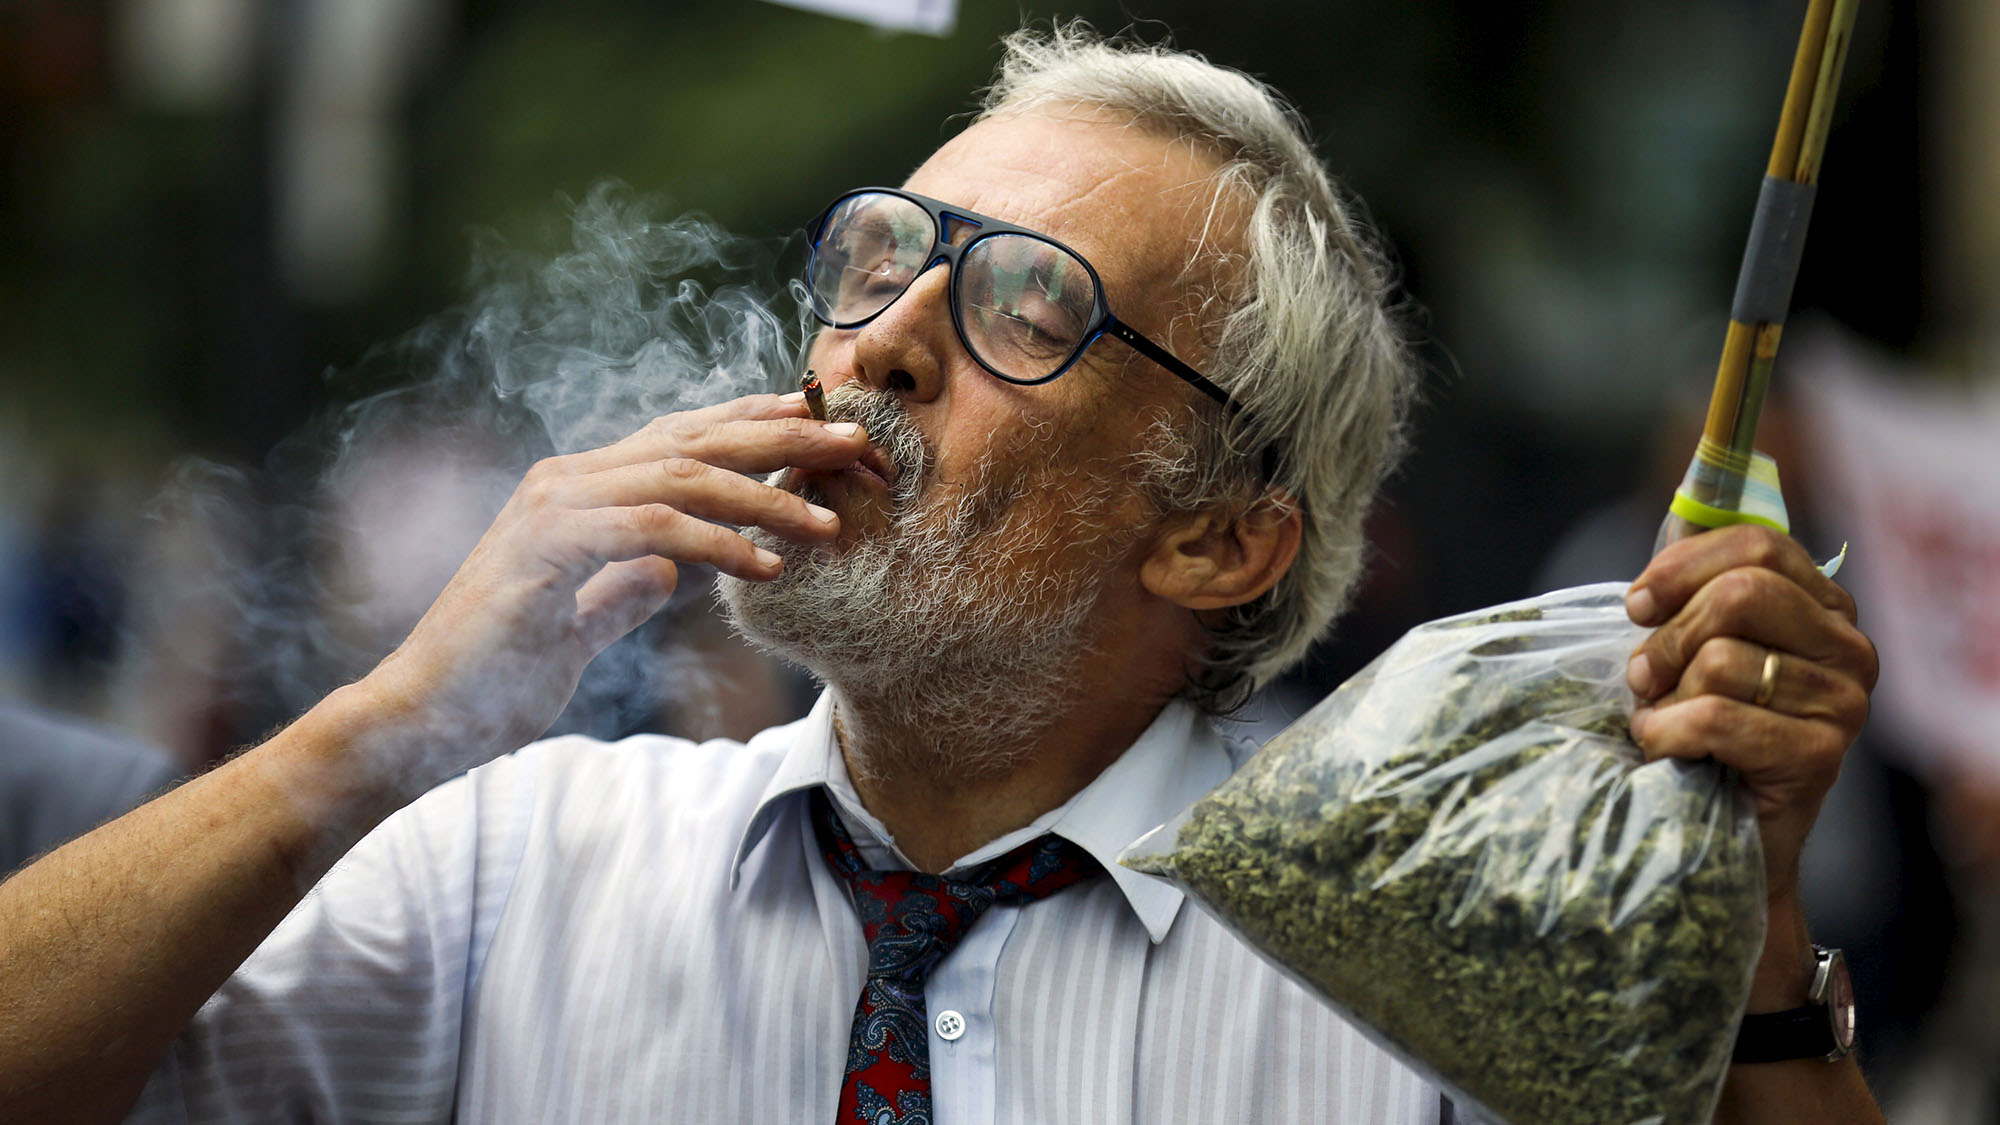 Activist Ray Turmel holds a bag of medical marijuana while he smokes a marijuana cigarette, as he calls for the total legalization of marijuana, outside the building where the federal election Munk Debate on Canadaís Foreign Policy is being held in Toronto, Canada September 28, 2015.